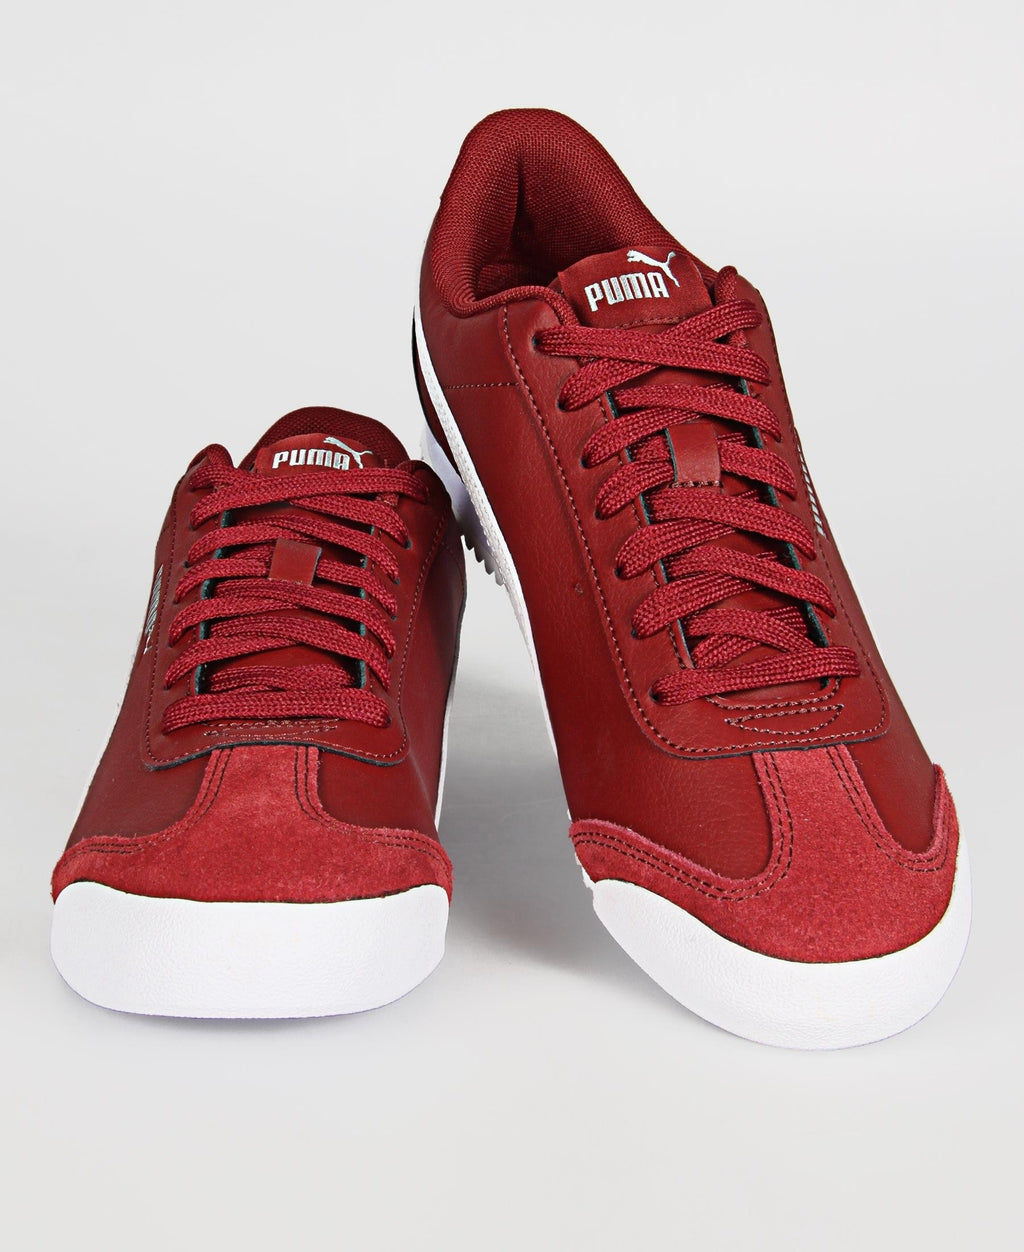 Men's Turino Sneakers - Burgundy